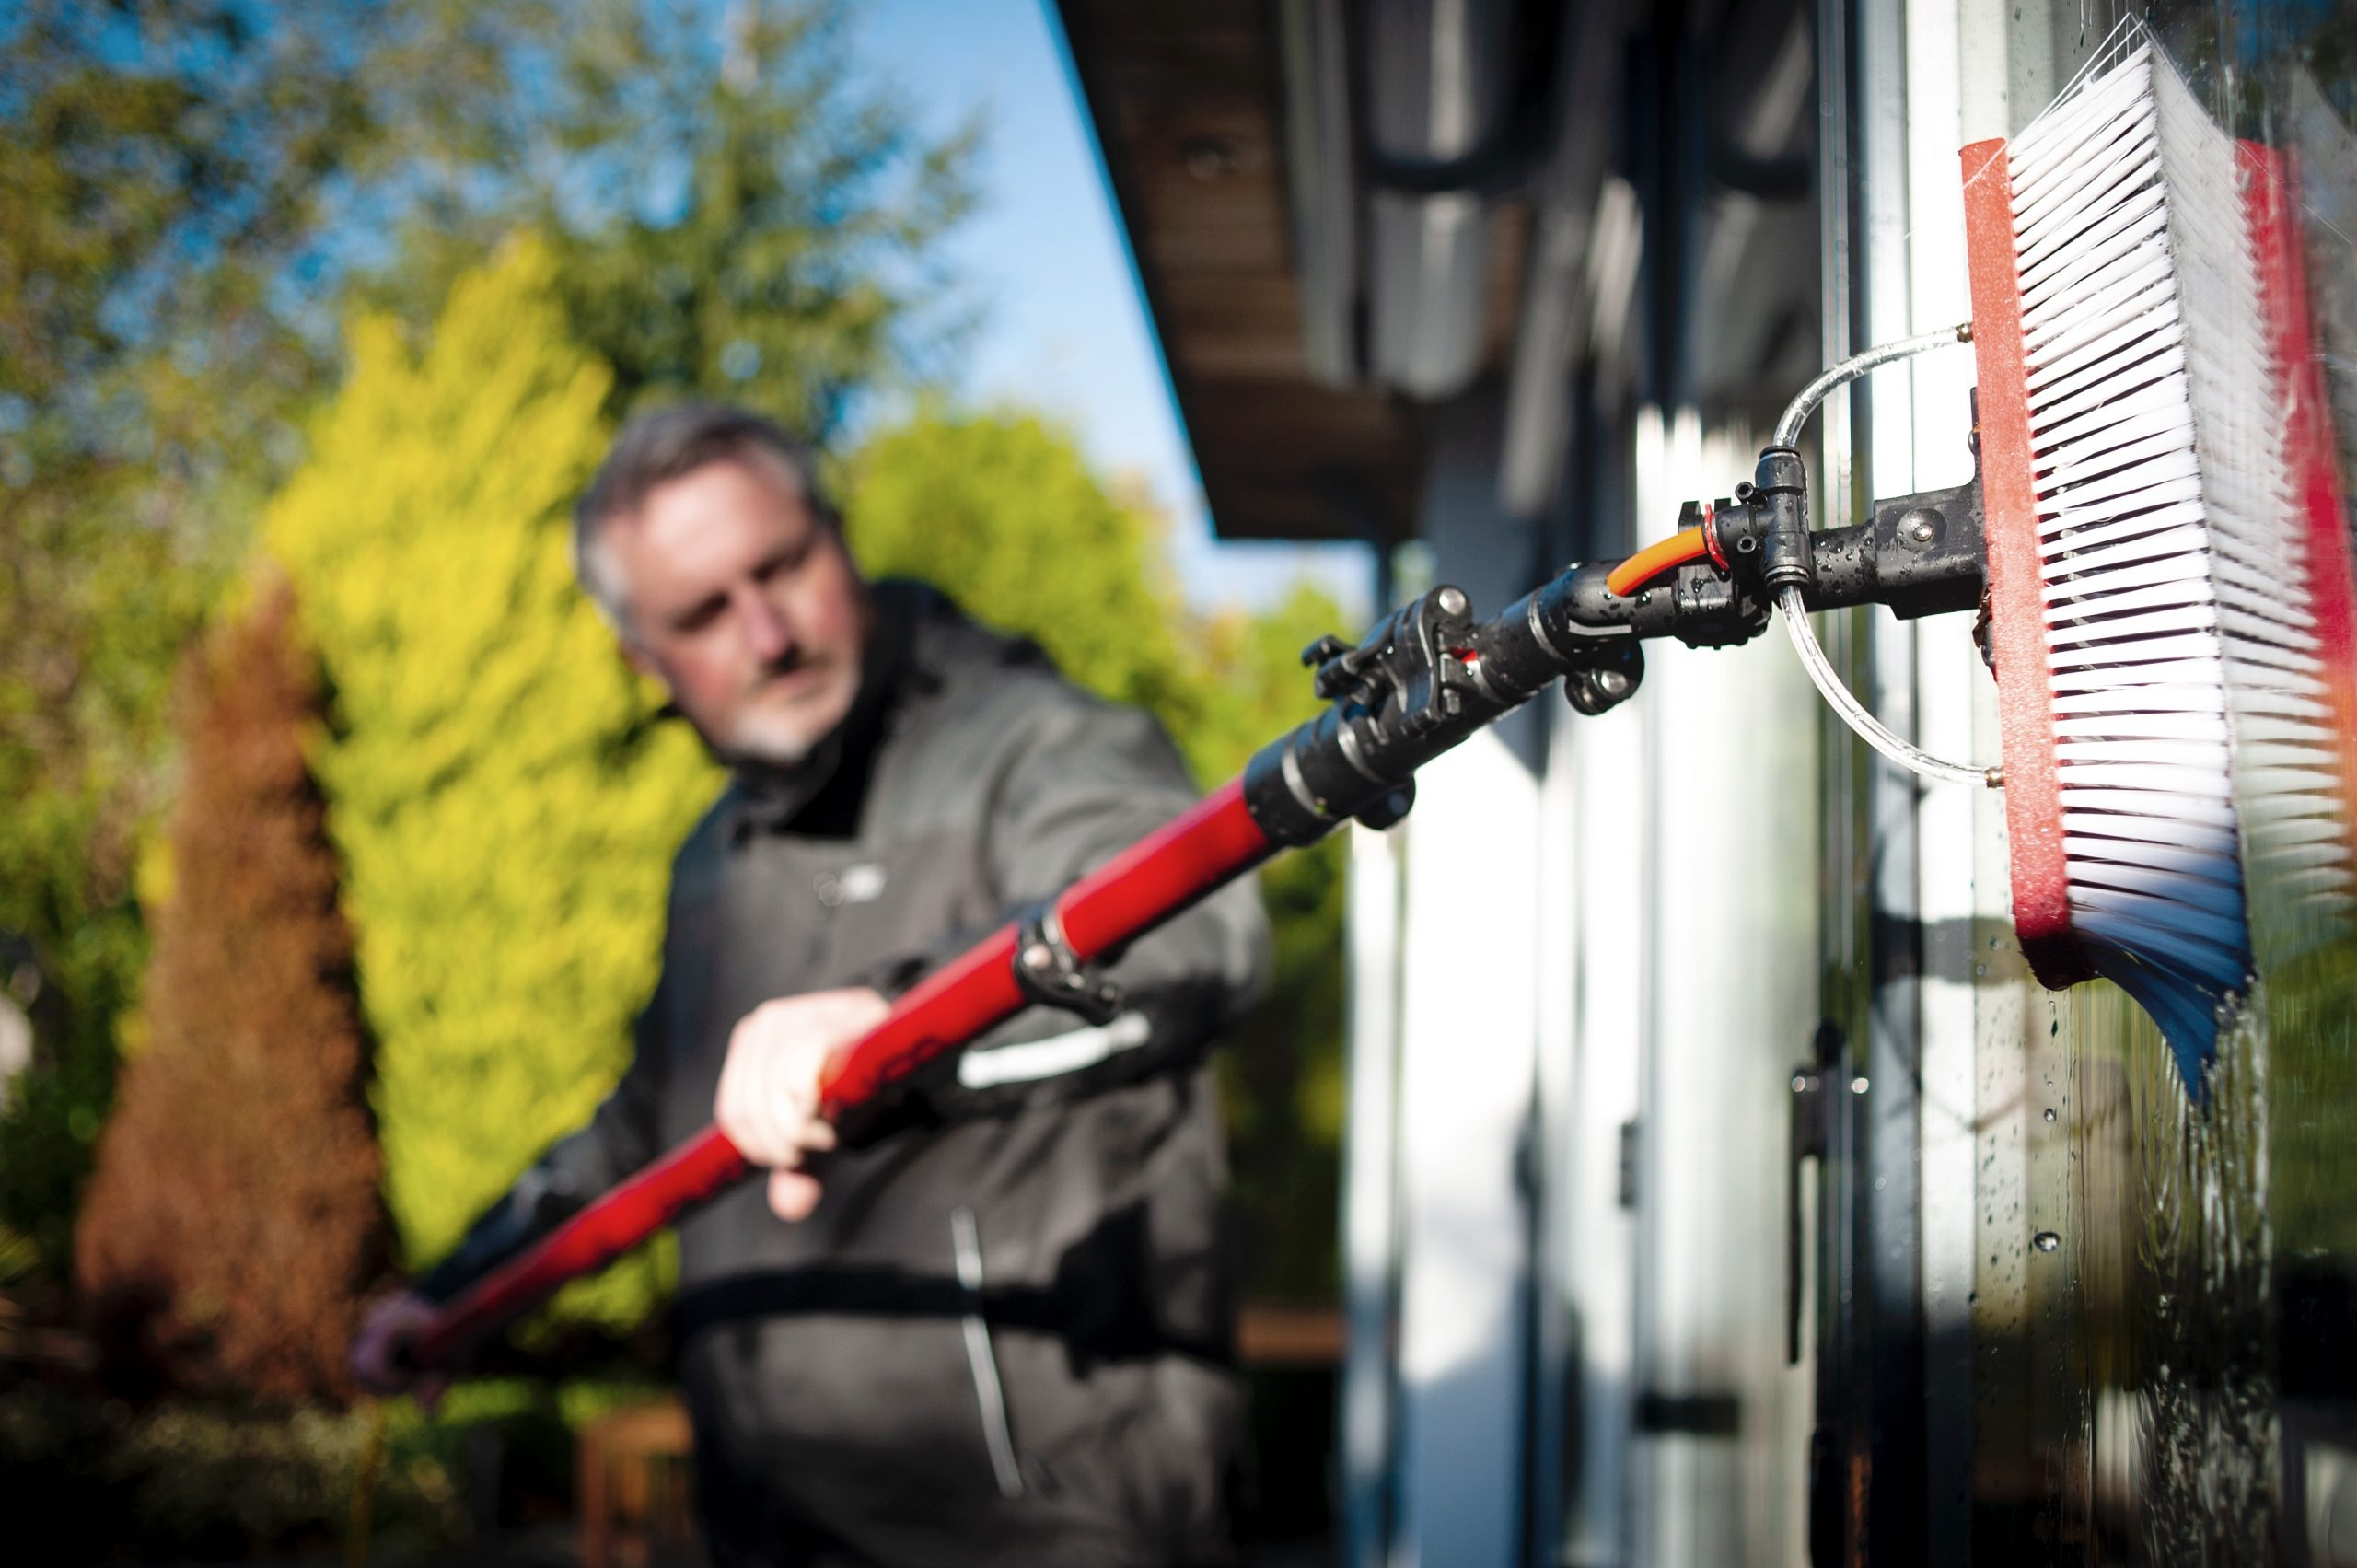 The Norwich Window Cleaning Company